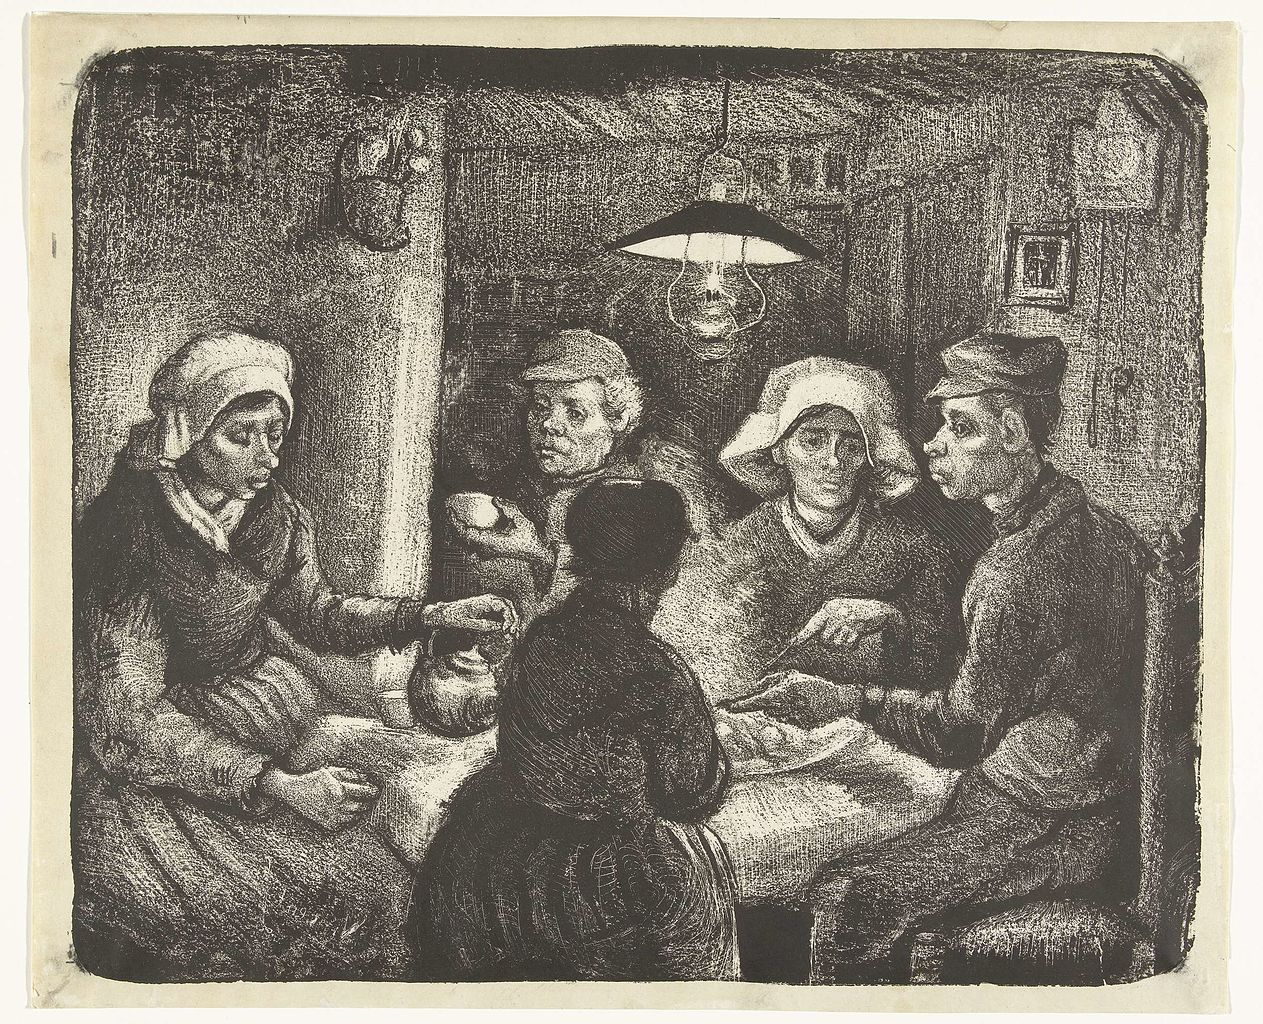 """analysis of the potato eaters by vincent van gogh essay Free essay: vincent van gogh's starry night and vincent's chair one of the most  famous  essay analysis of """"the potato eaters"""" by vincent van gogh."""